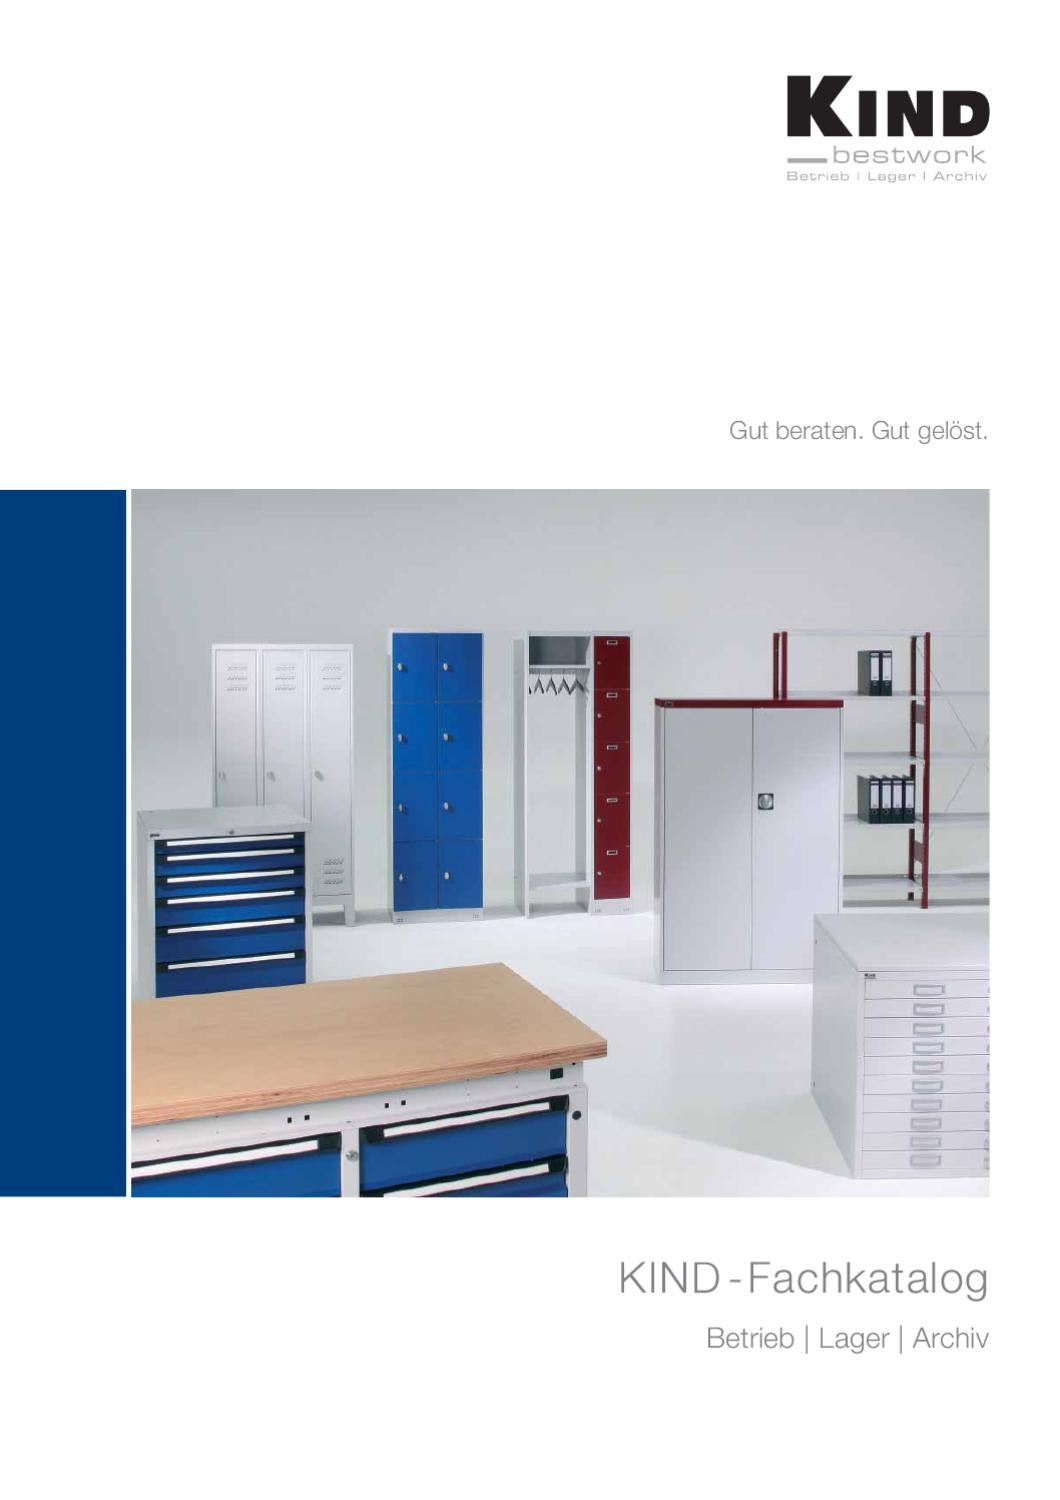 kind bestwork fachkatalog 2011op mai 11 by sascha h gli issuu. Black Bedroom Furniture Sets. Home Design Ideas